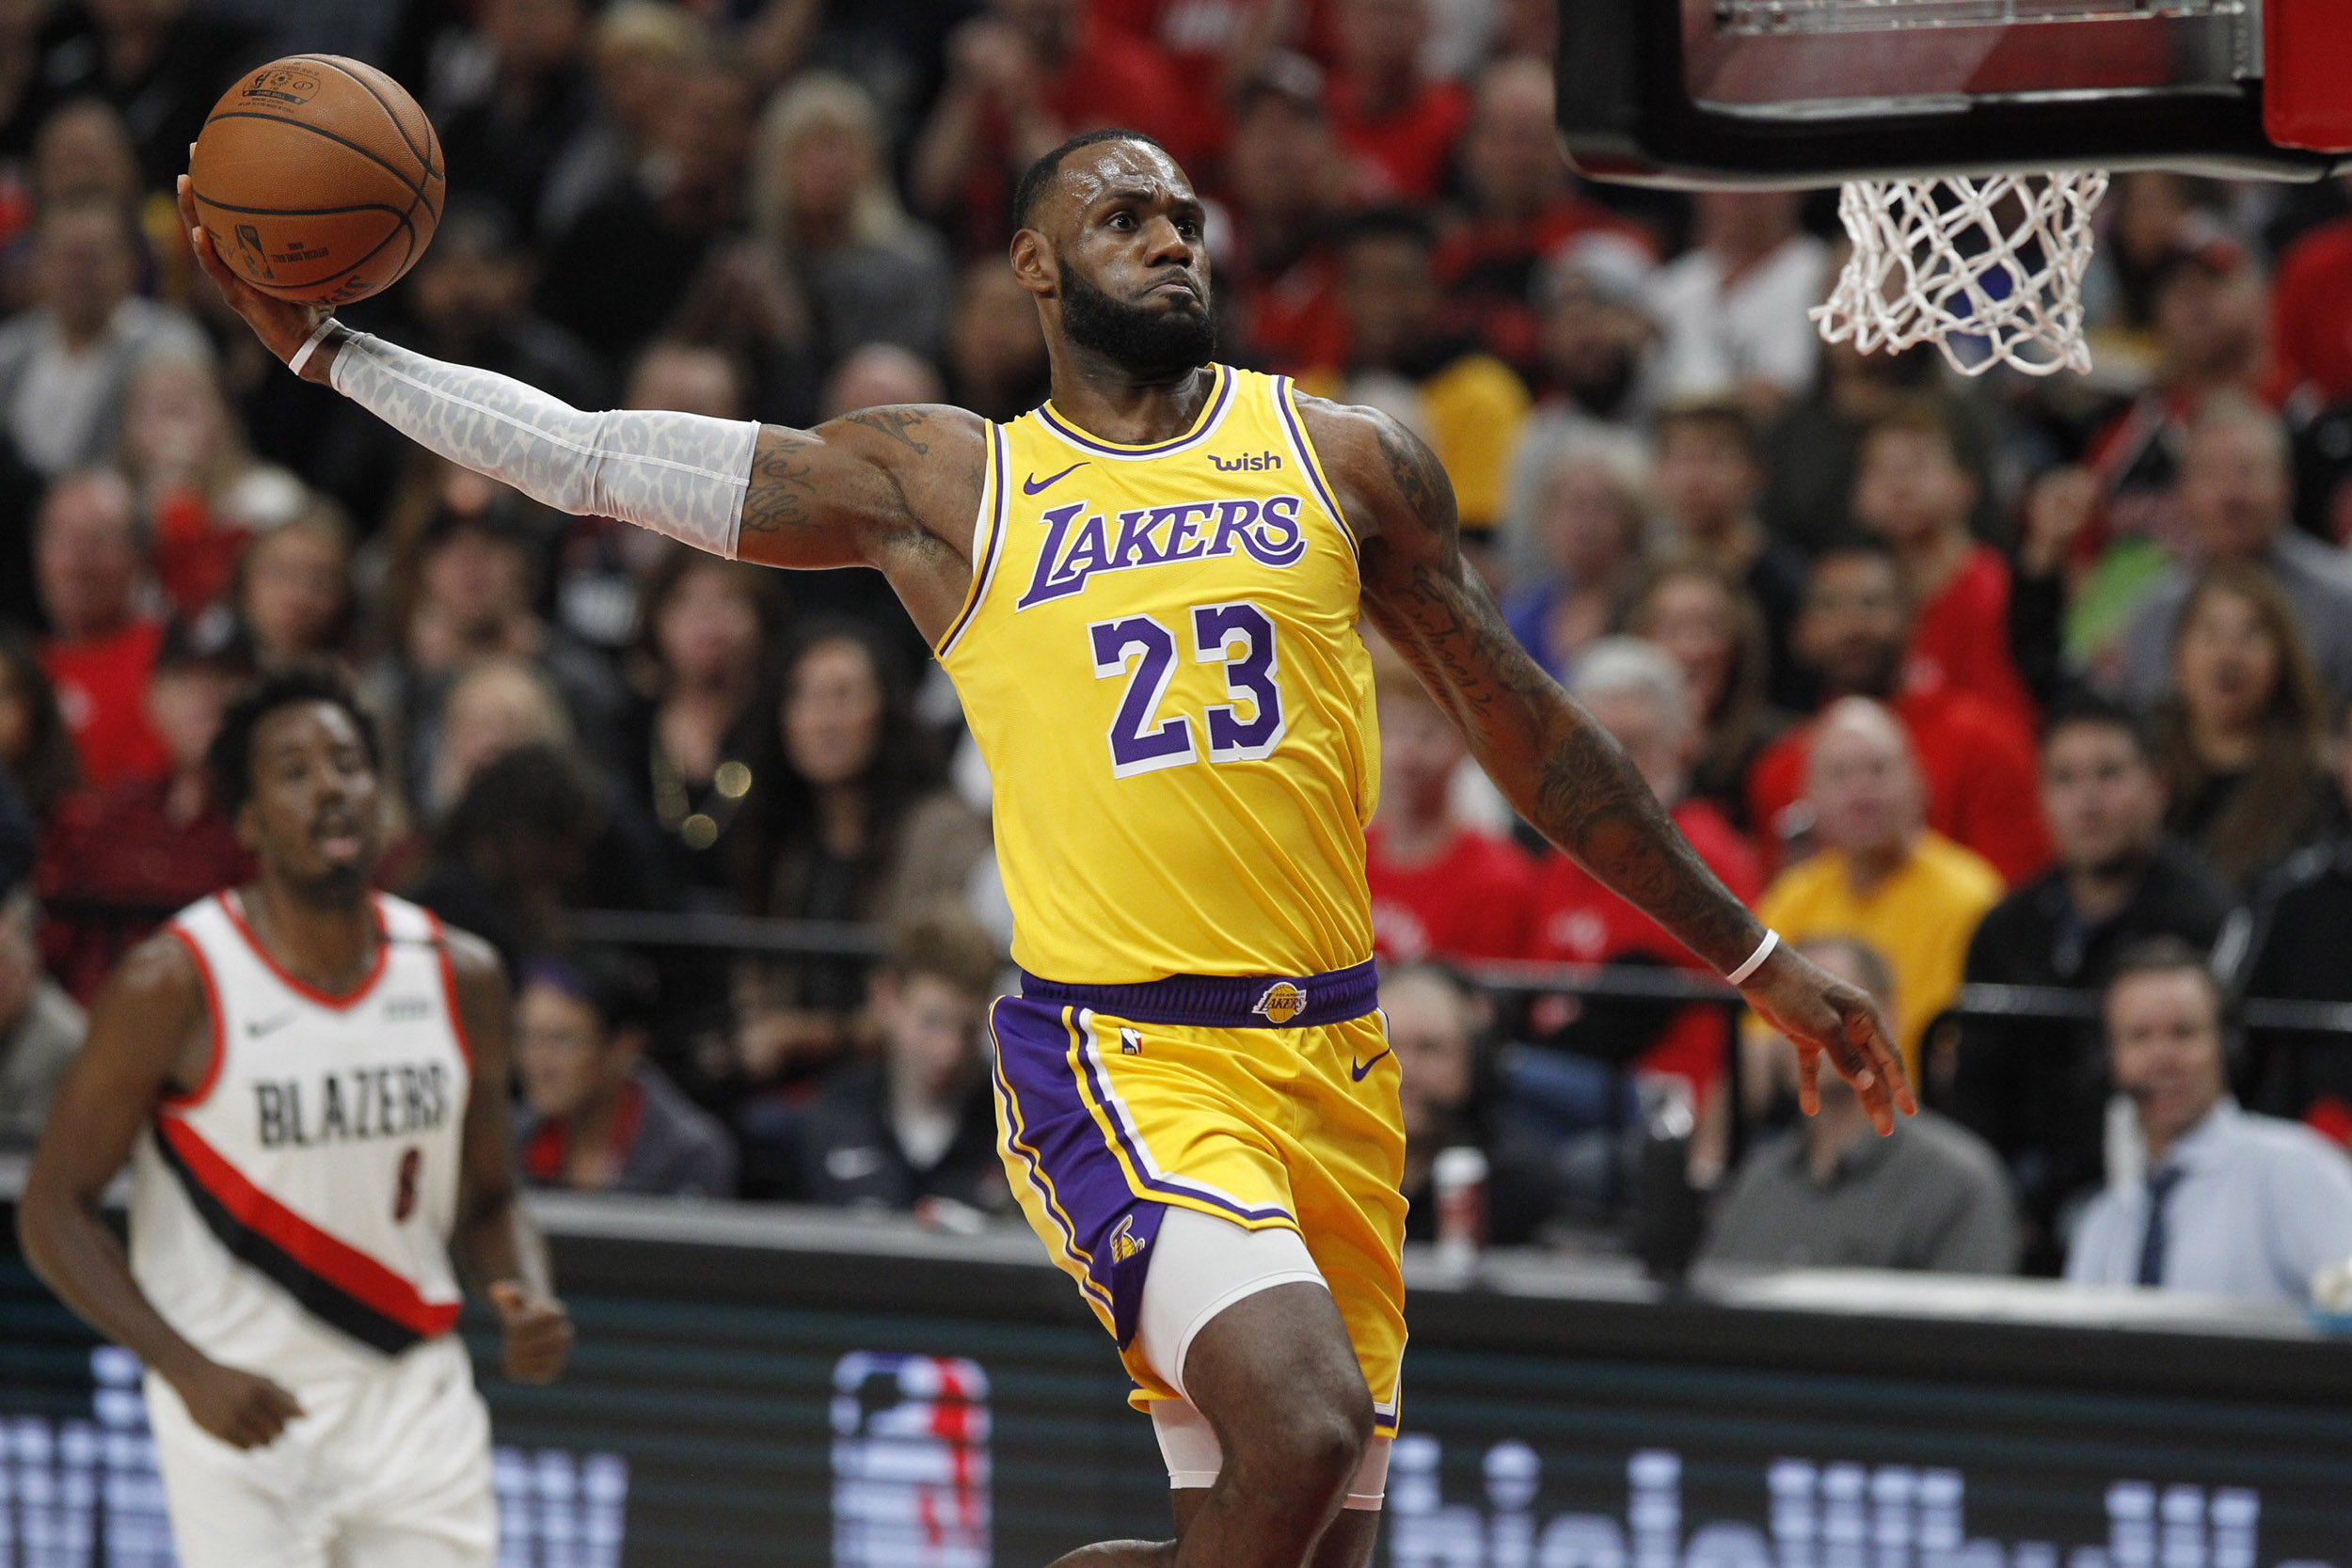 LeBron-dunks-his-way-to-26-in-loss-to-Blazers-on-Lakers-debut-